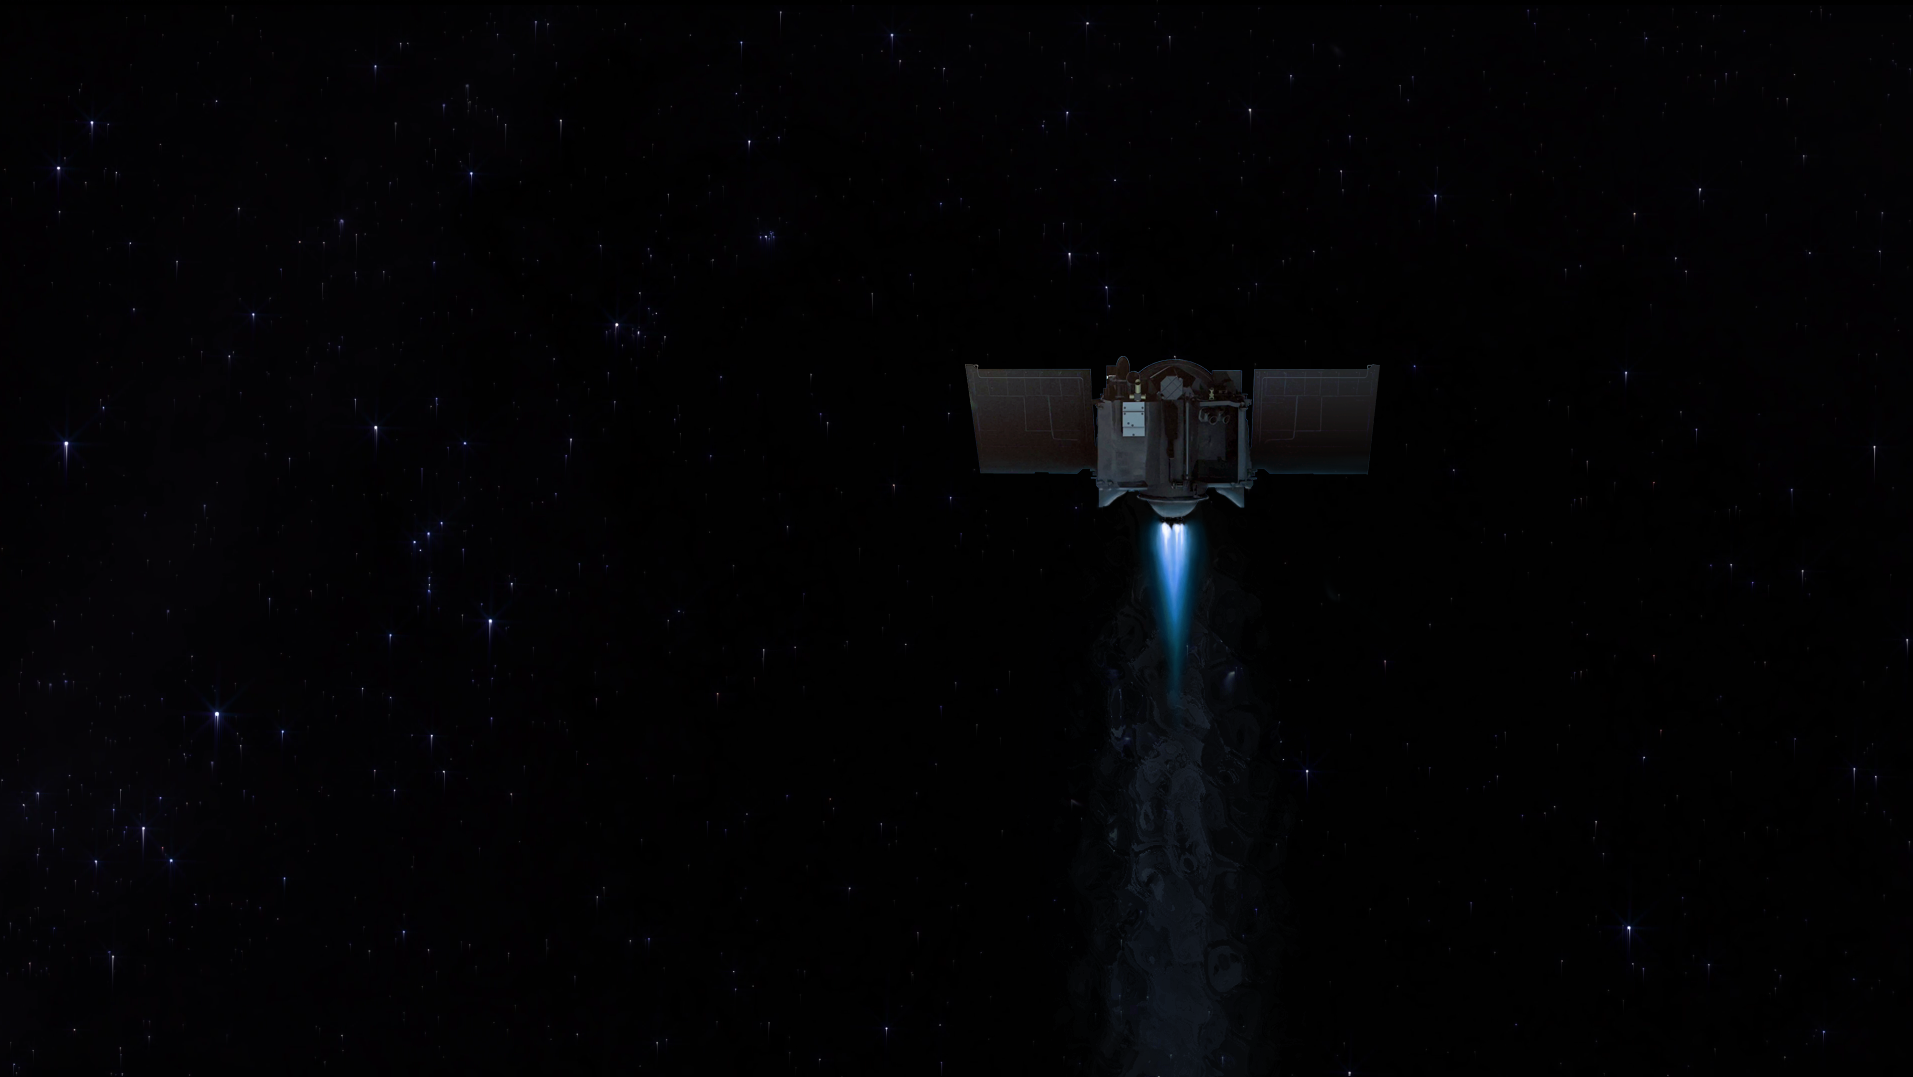 An artist's impression of the OSIRIS-REx spacecraft performing a Deep Space Maneuver.